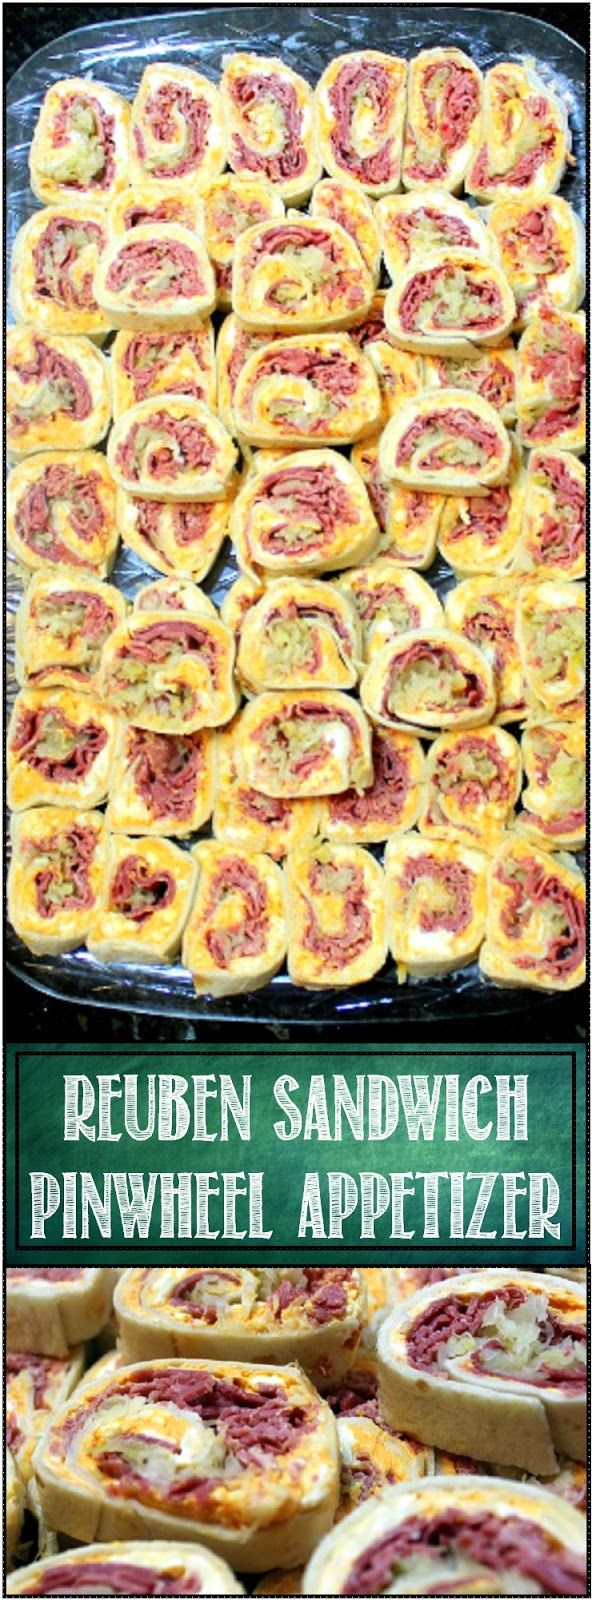 It's Graduation time in my area. I get asked to make a tray of appetizers often. I love serving these up to fans of the sandwich, a...